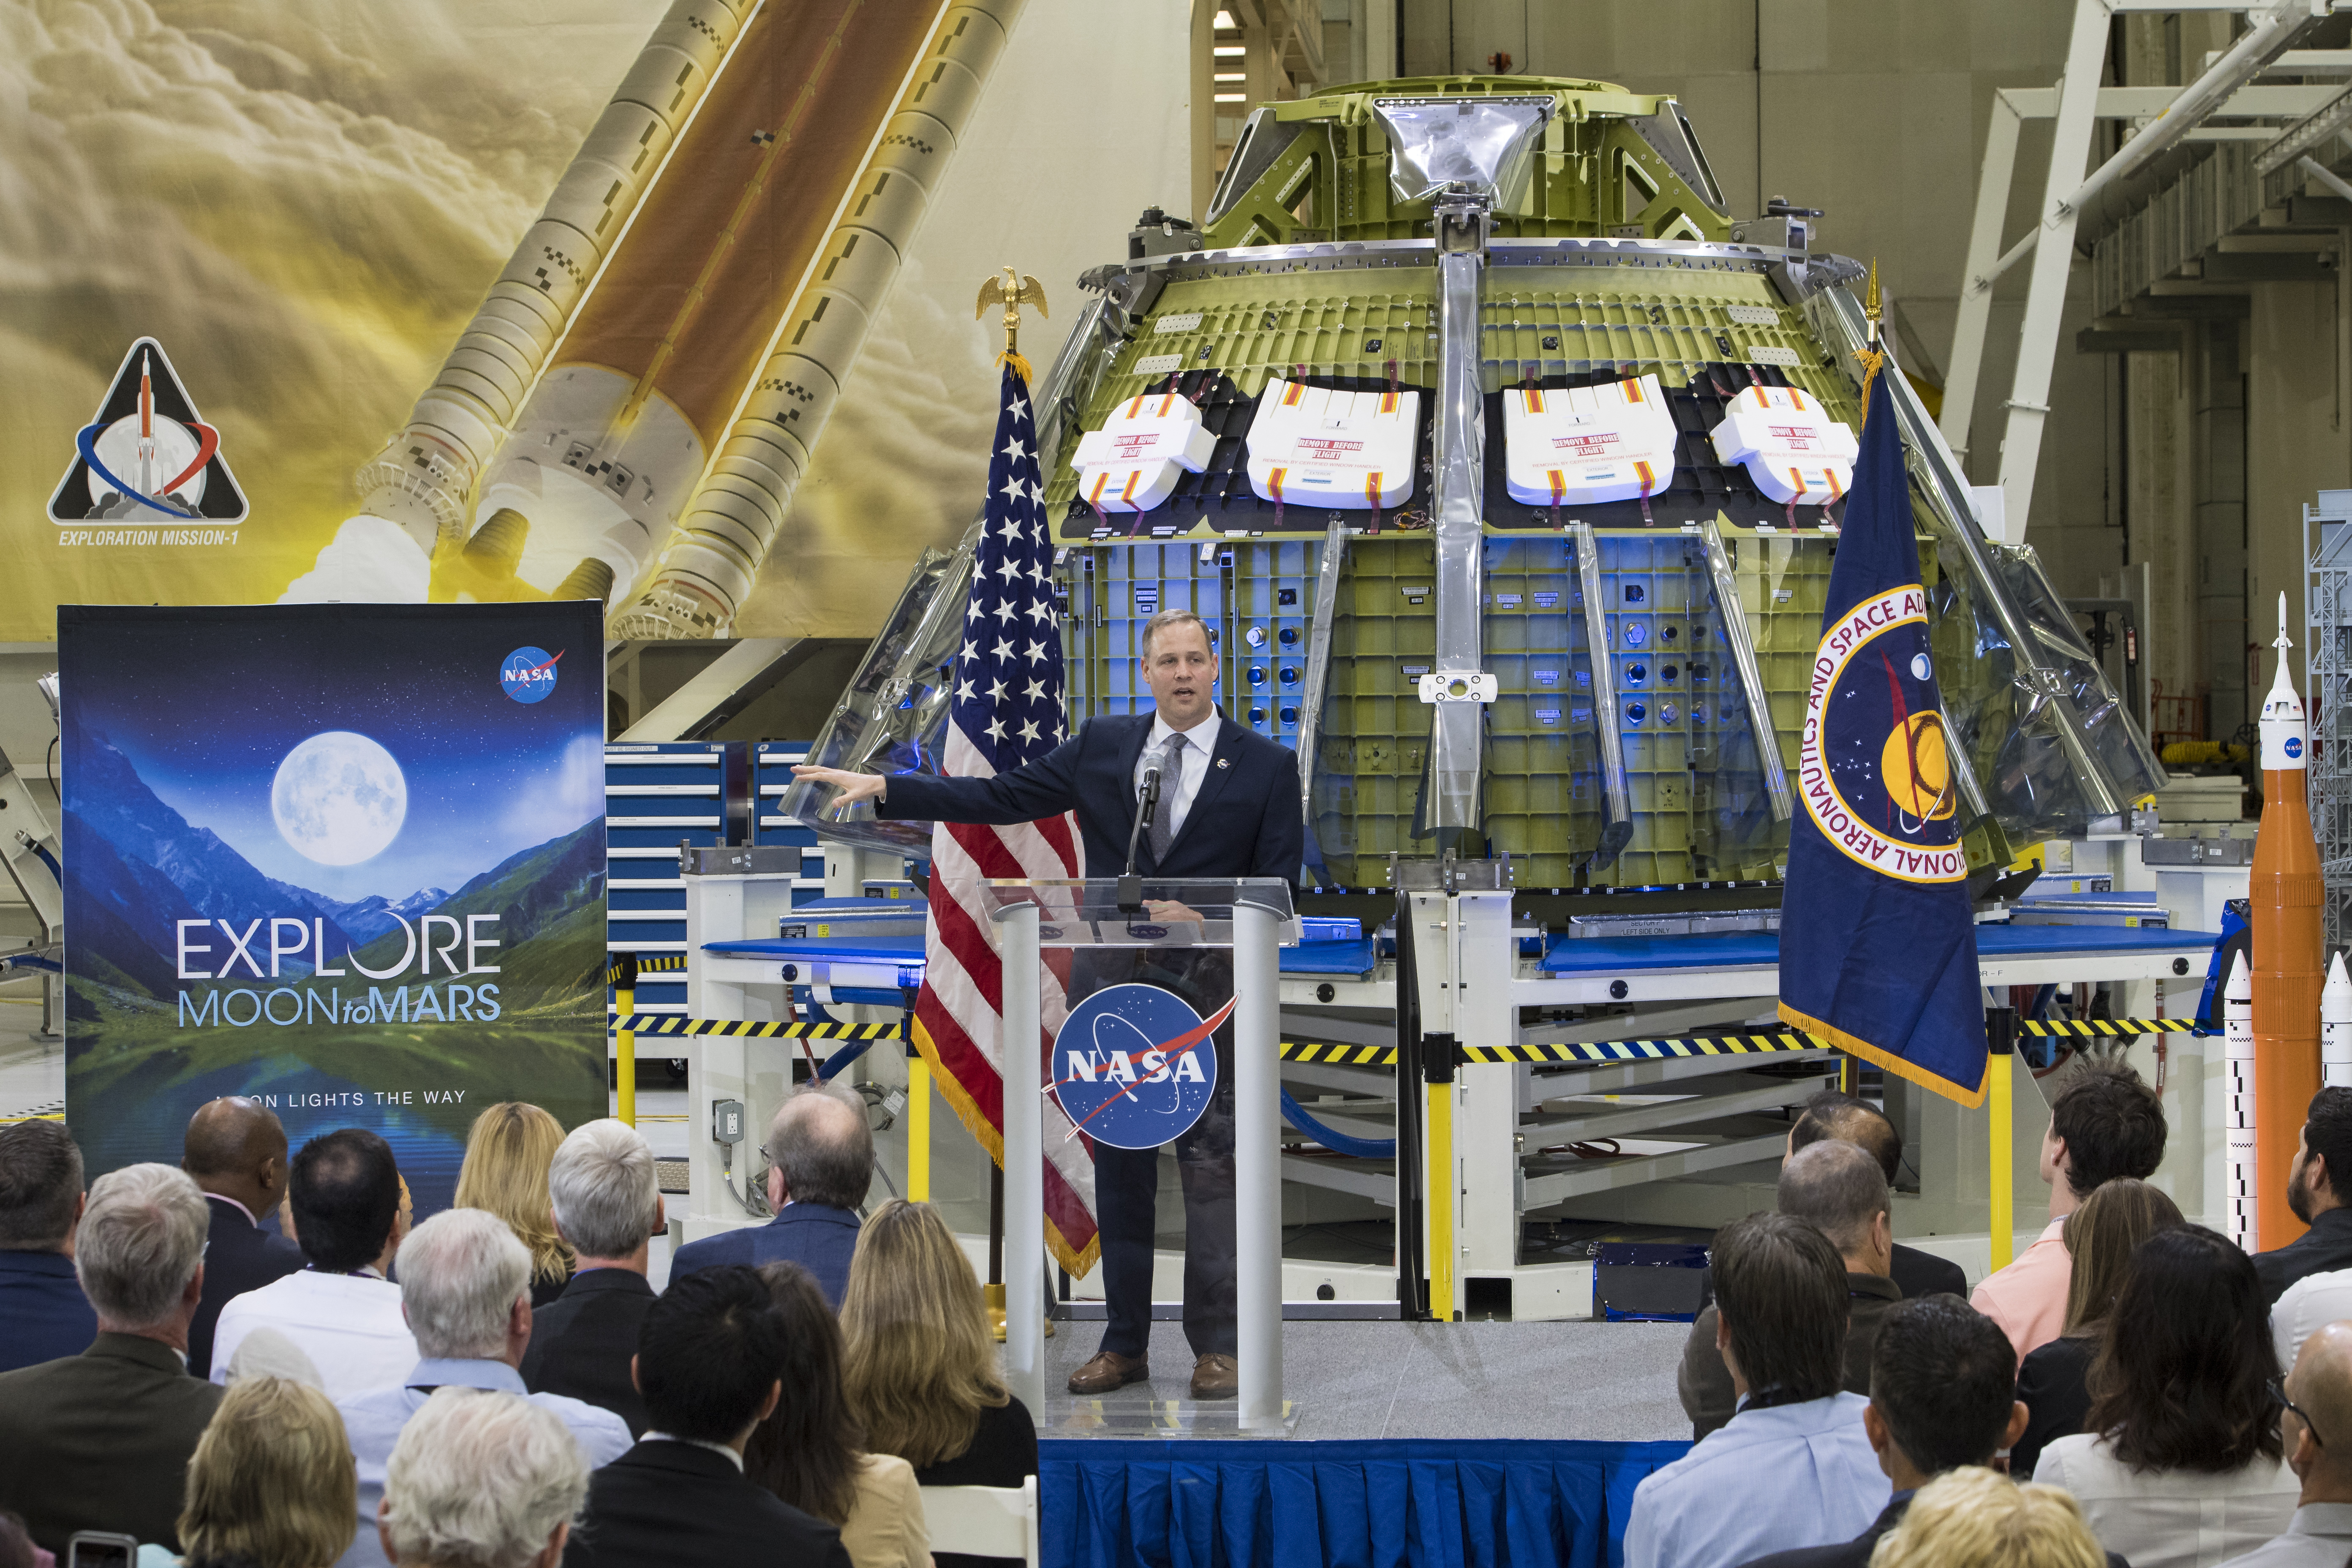 CAPE CANAVERAL, FL - MARCH 11: NASA Administrator Jim Bridenstine talks to employees about the agency's progress toward sending astronauts to the Moon and on to Mars during a televised event at the Neil Armstrong Operations and Checkout Building at NASA's Kennedy Space Center on March 11, 2019 in Cape Canaveral, Florida. (Aubrey Gemignani/NASA via Getty Images)